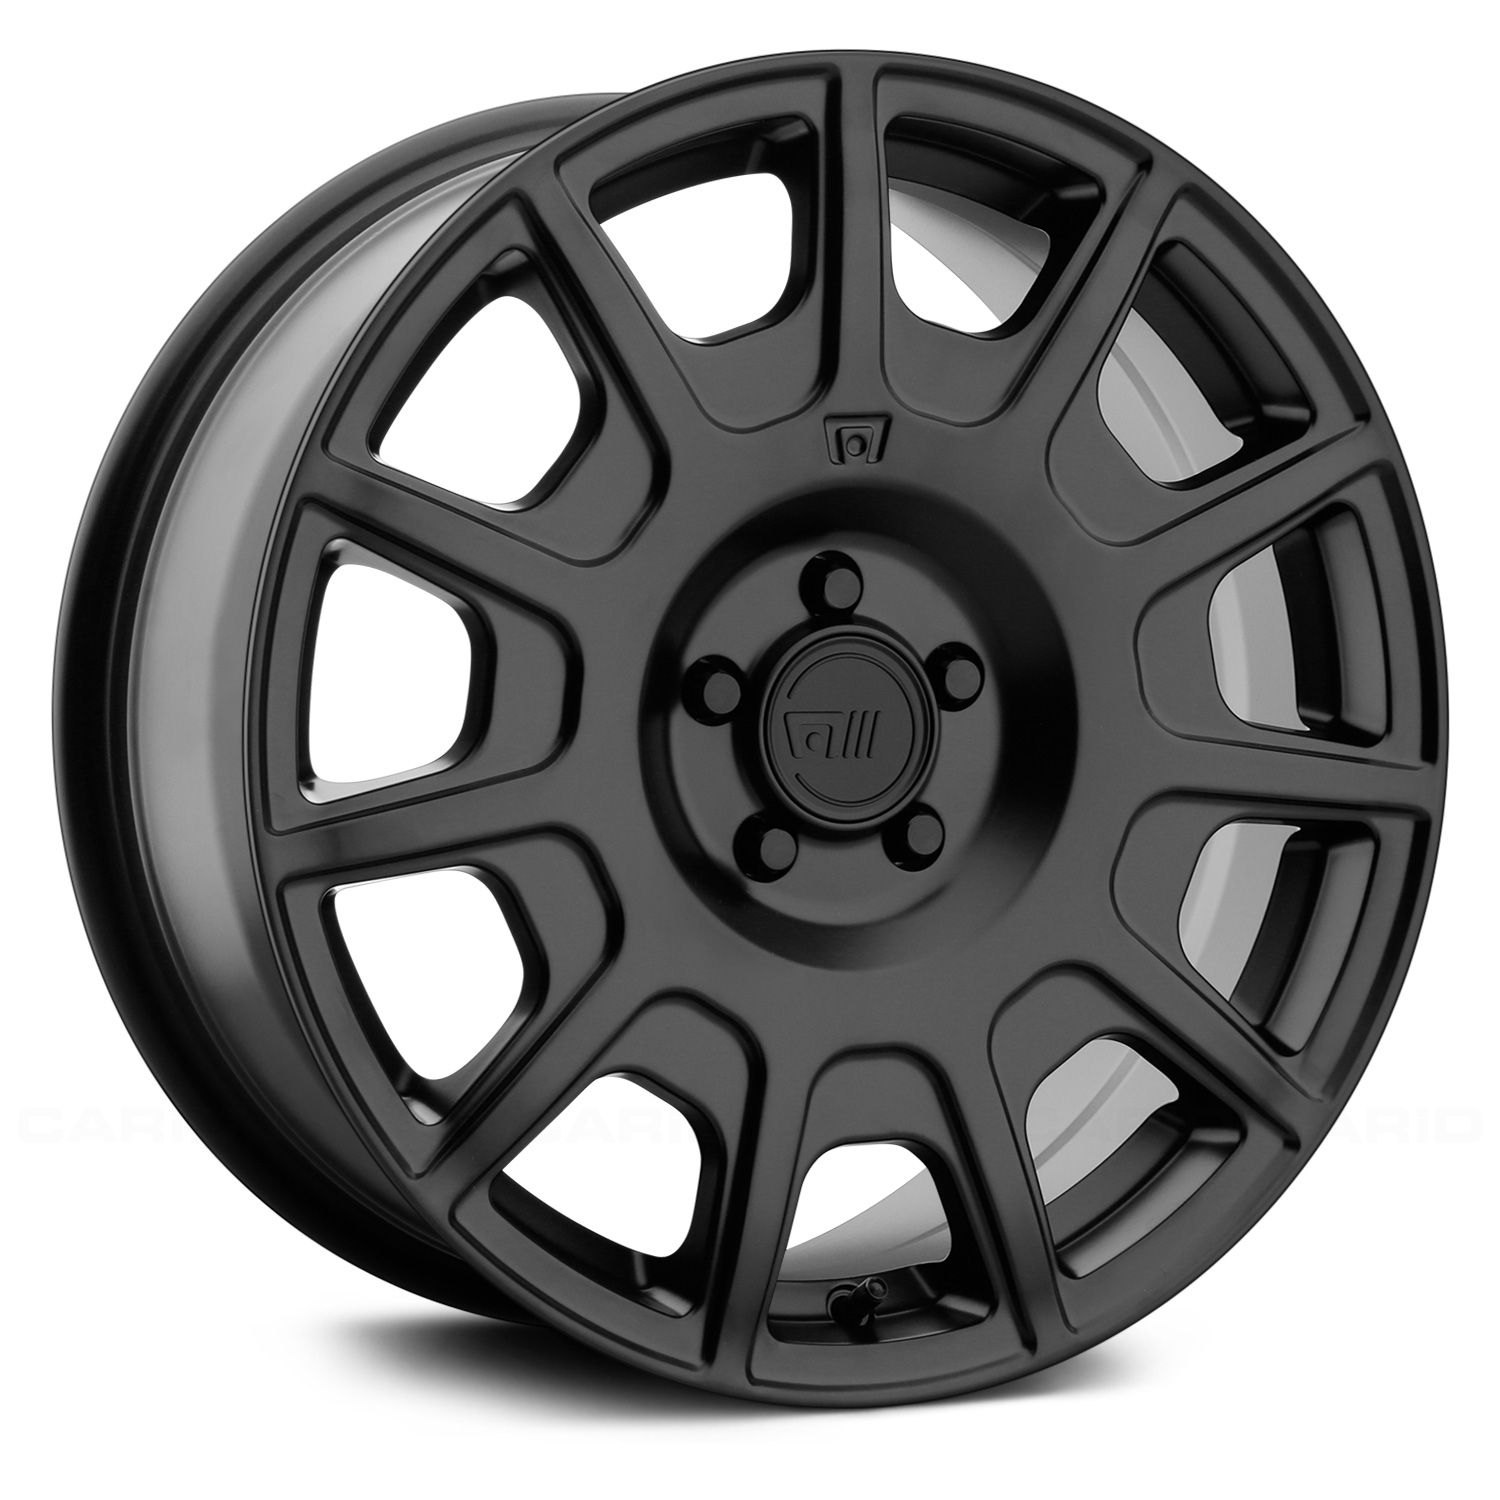 Motegi Racing 174 Mr139 Wheels Satin Black Rims